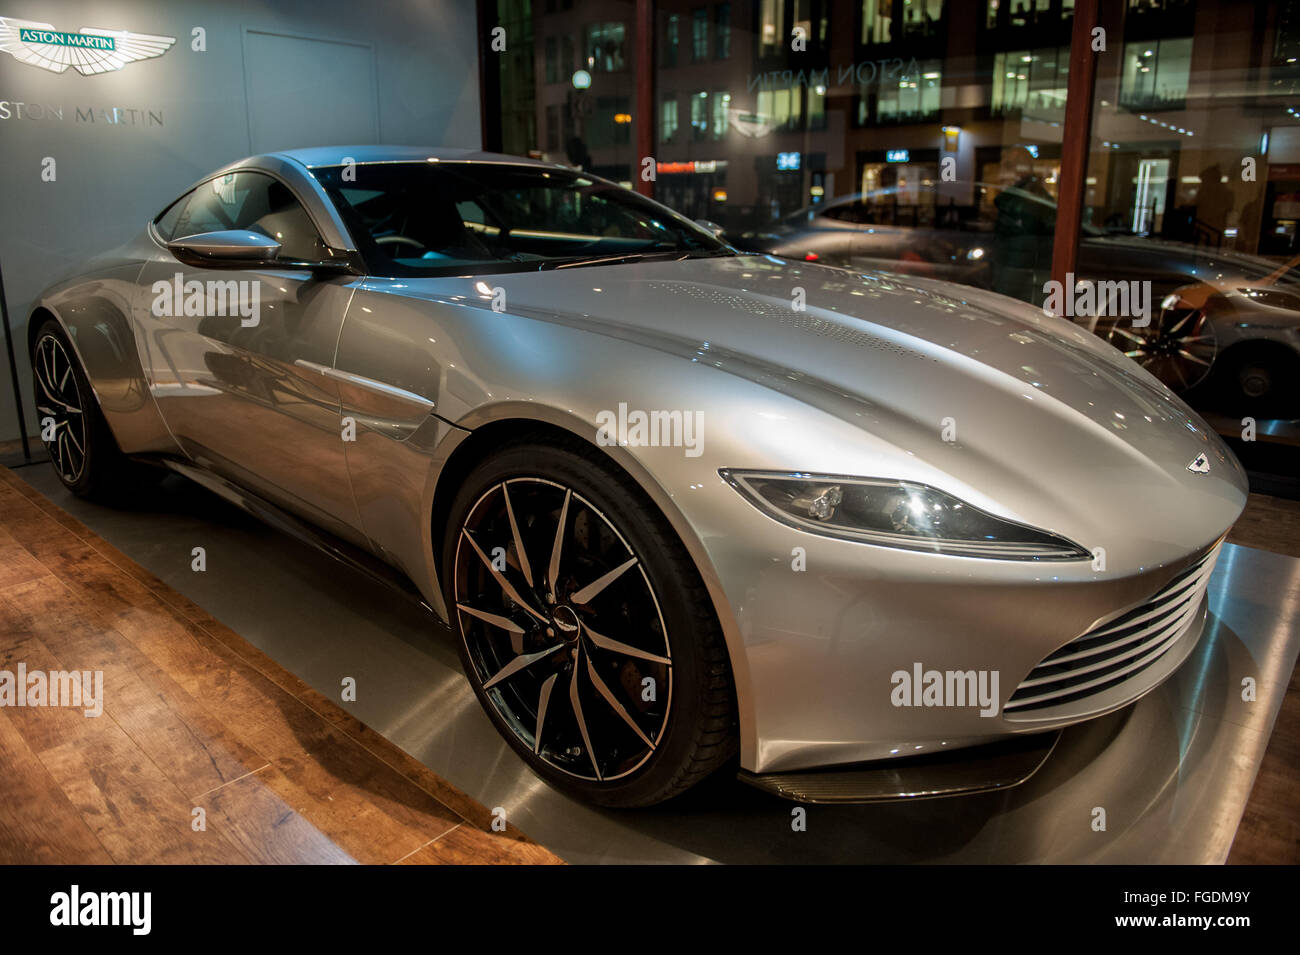 Three Aston Martin Sports Cars Including The Db5 From